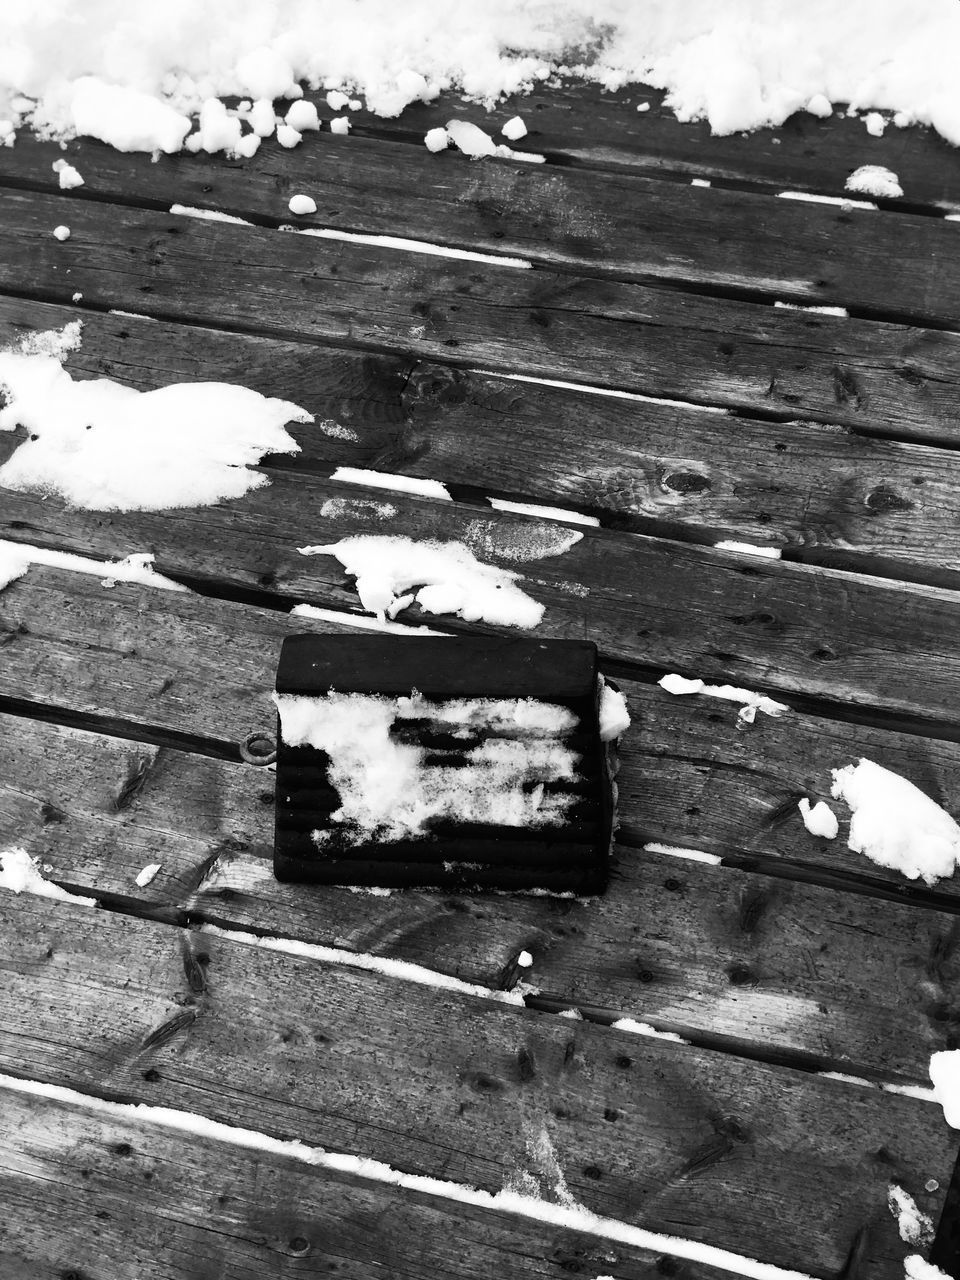 HIGH ANGLE VIEW OF SNOW ON WOODEN TABLE